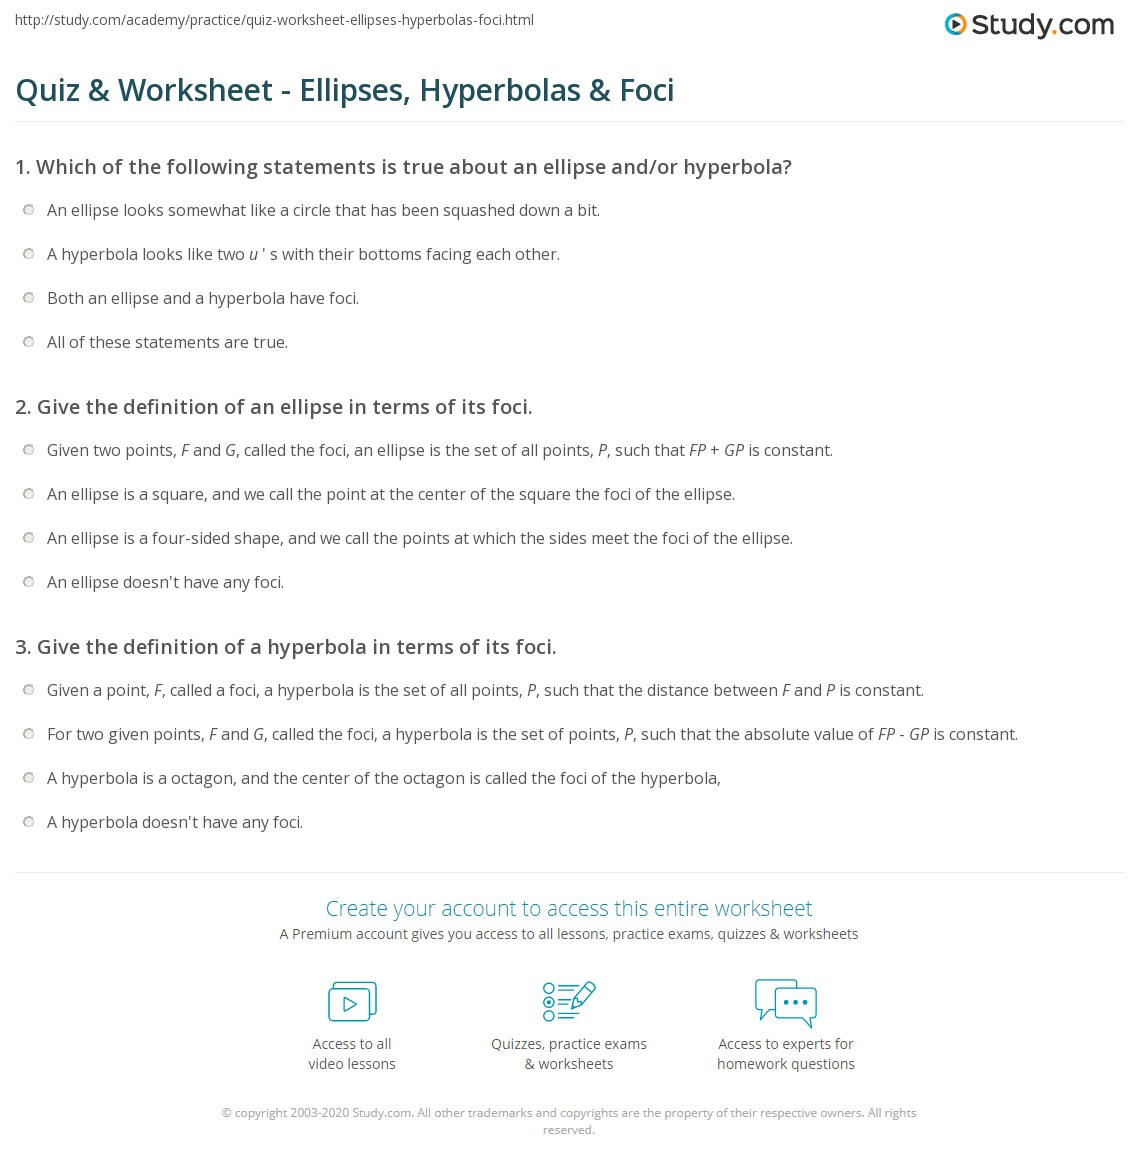 Quiz Worksheet Ellipses Hyperbolas Foci Study Com